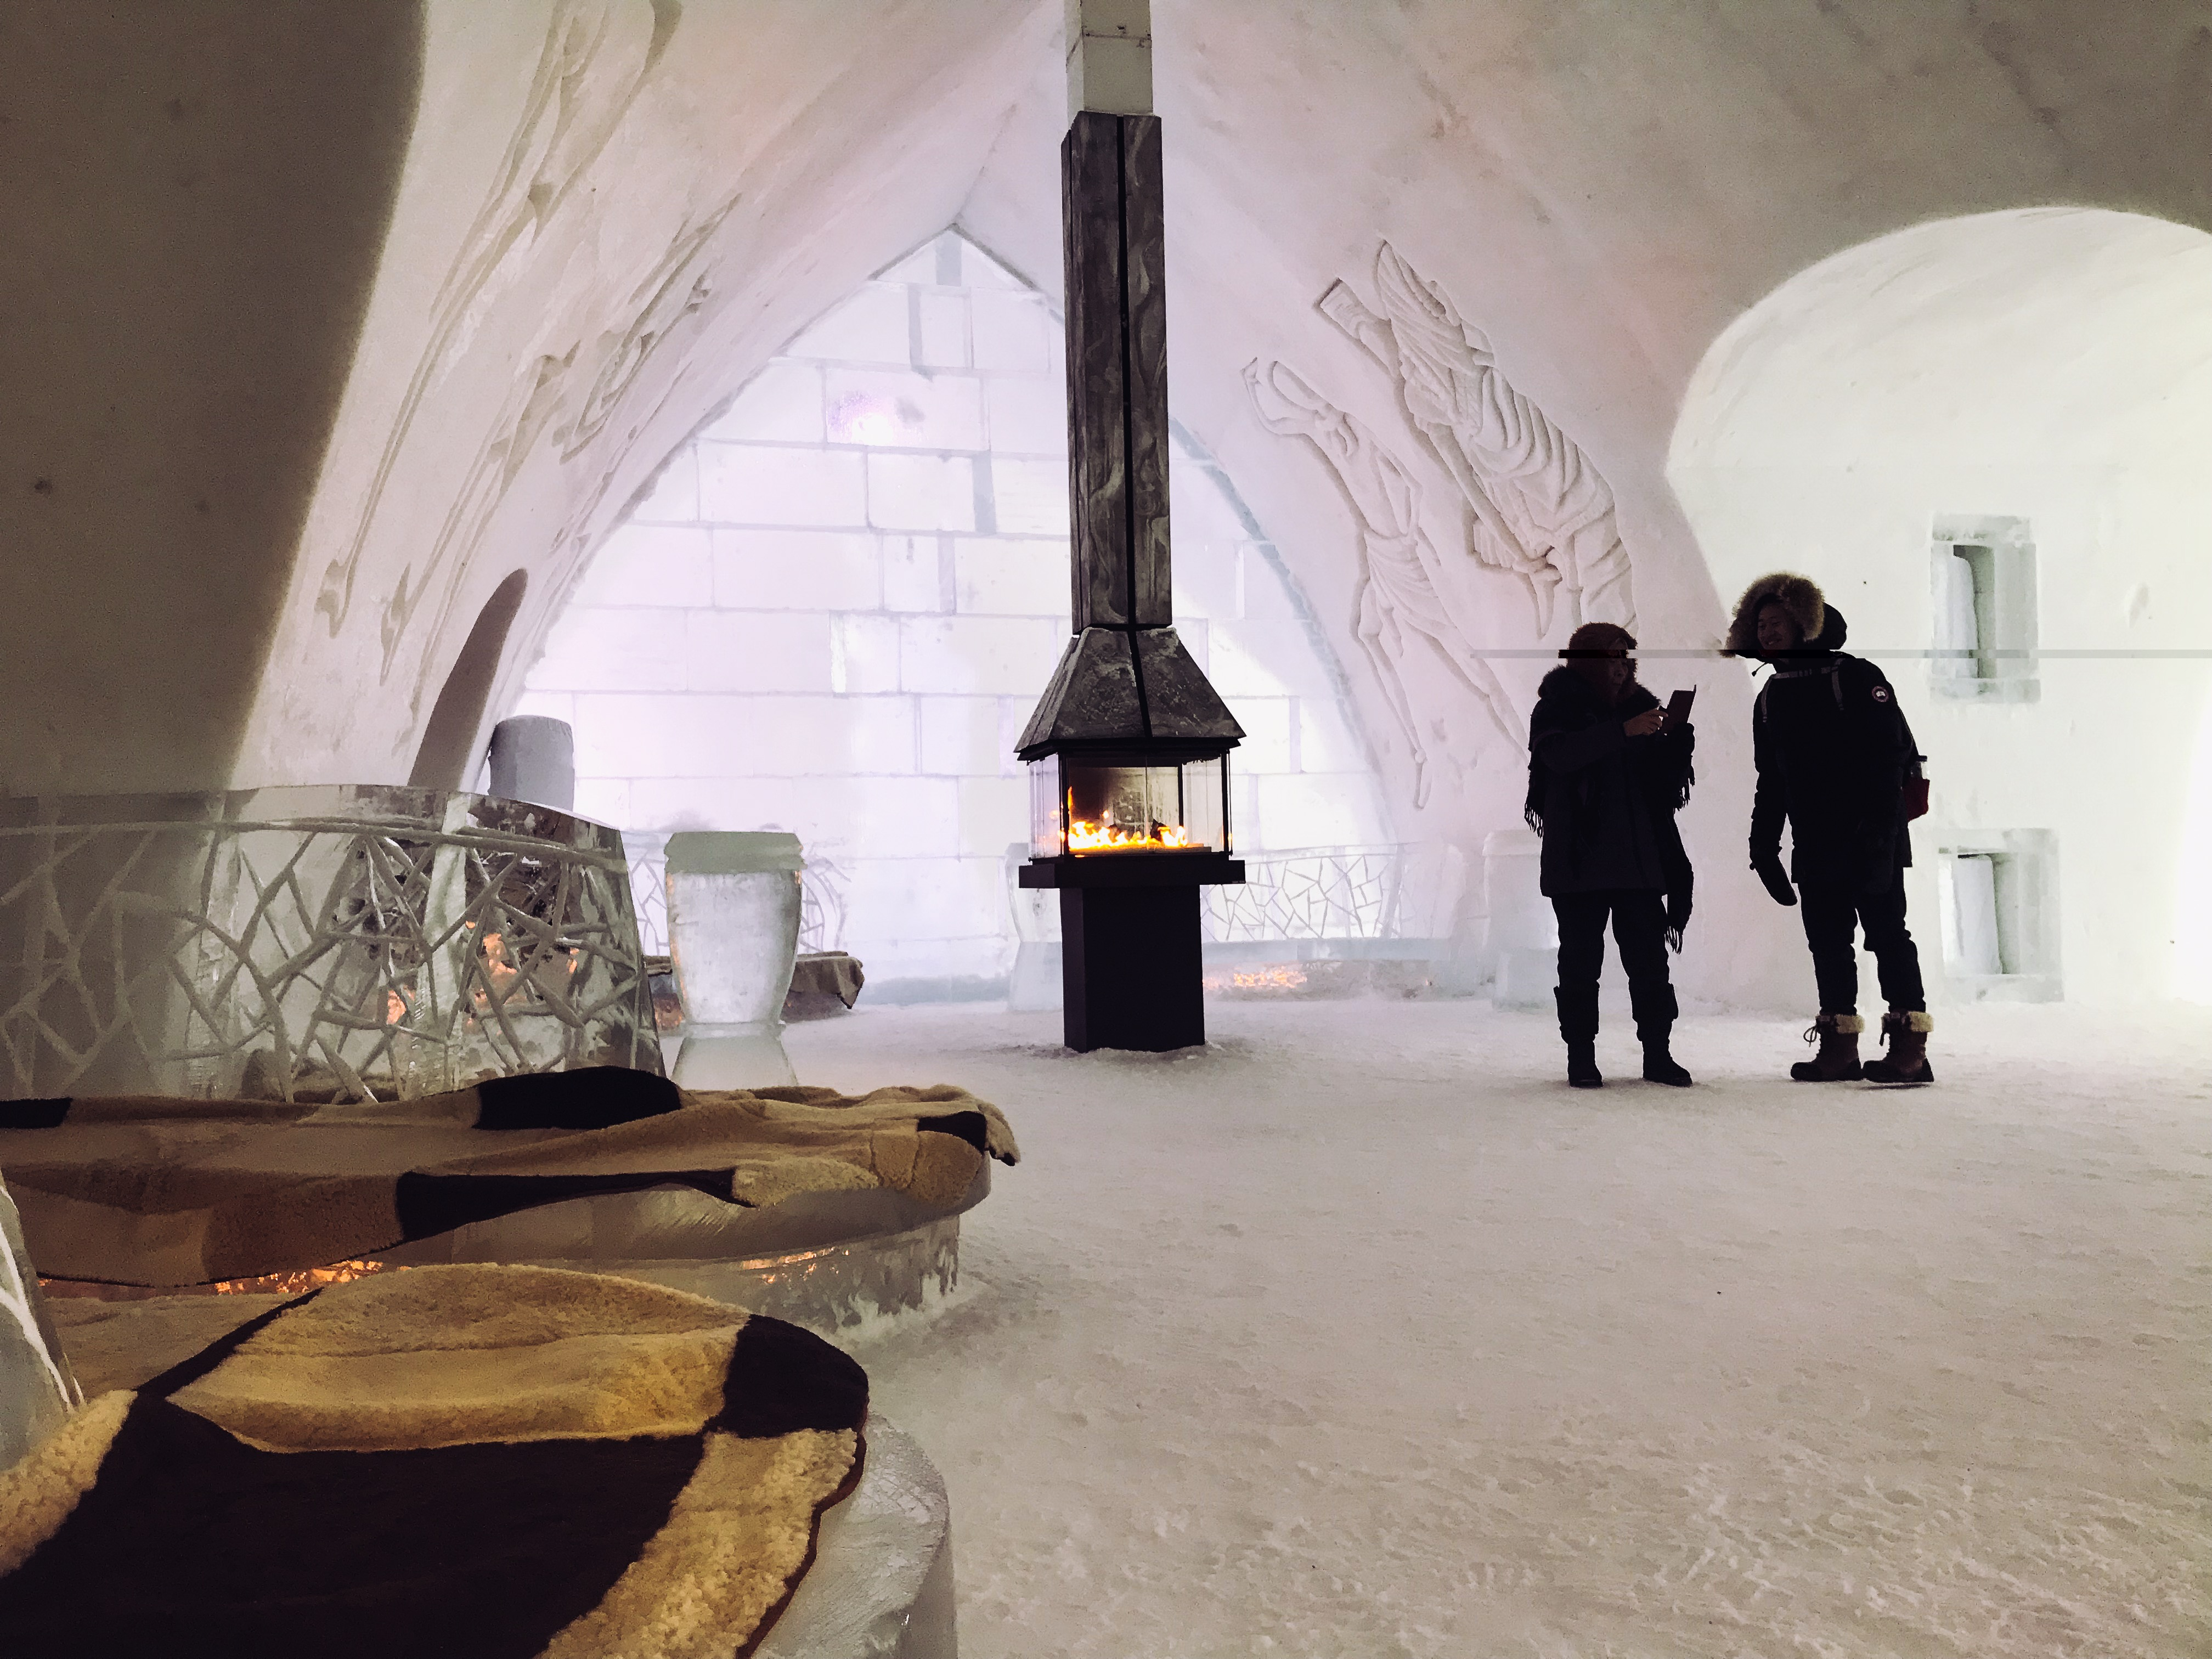 Bar lounge at the Quebec Ice Hotel